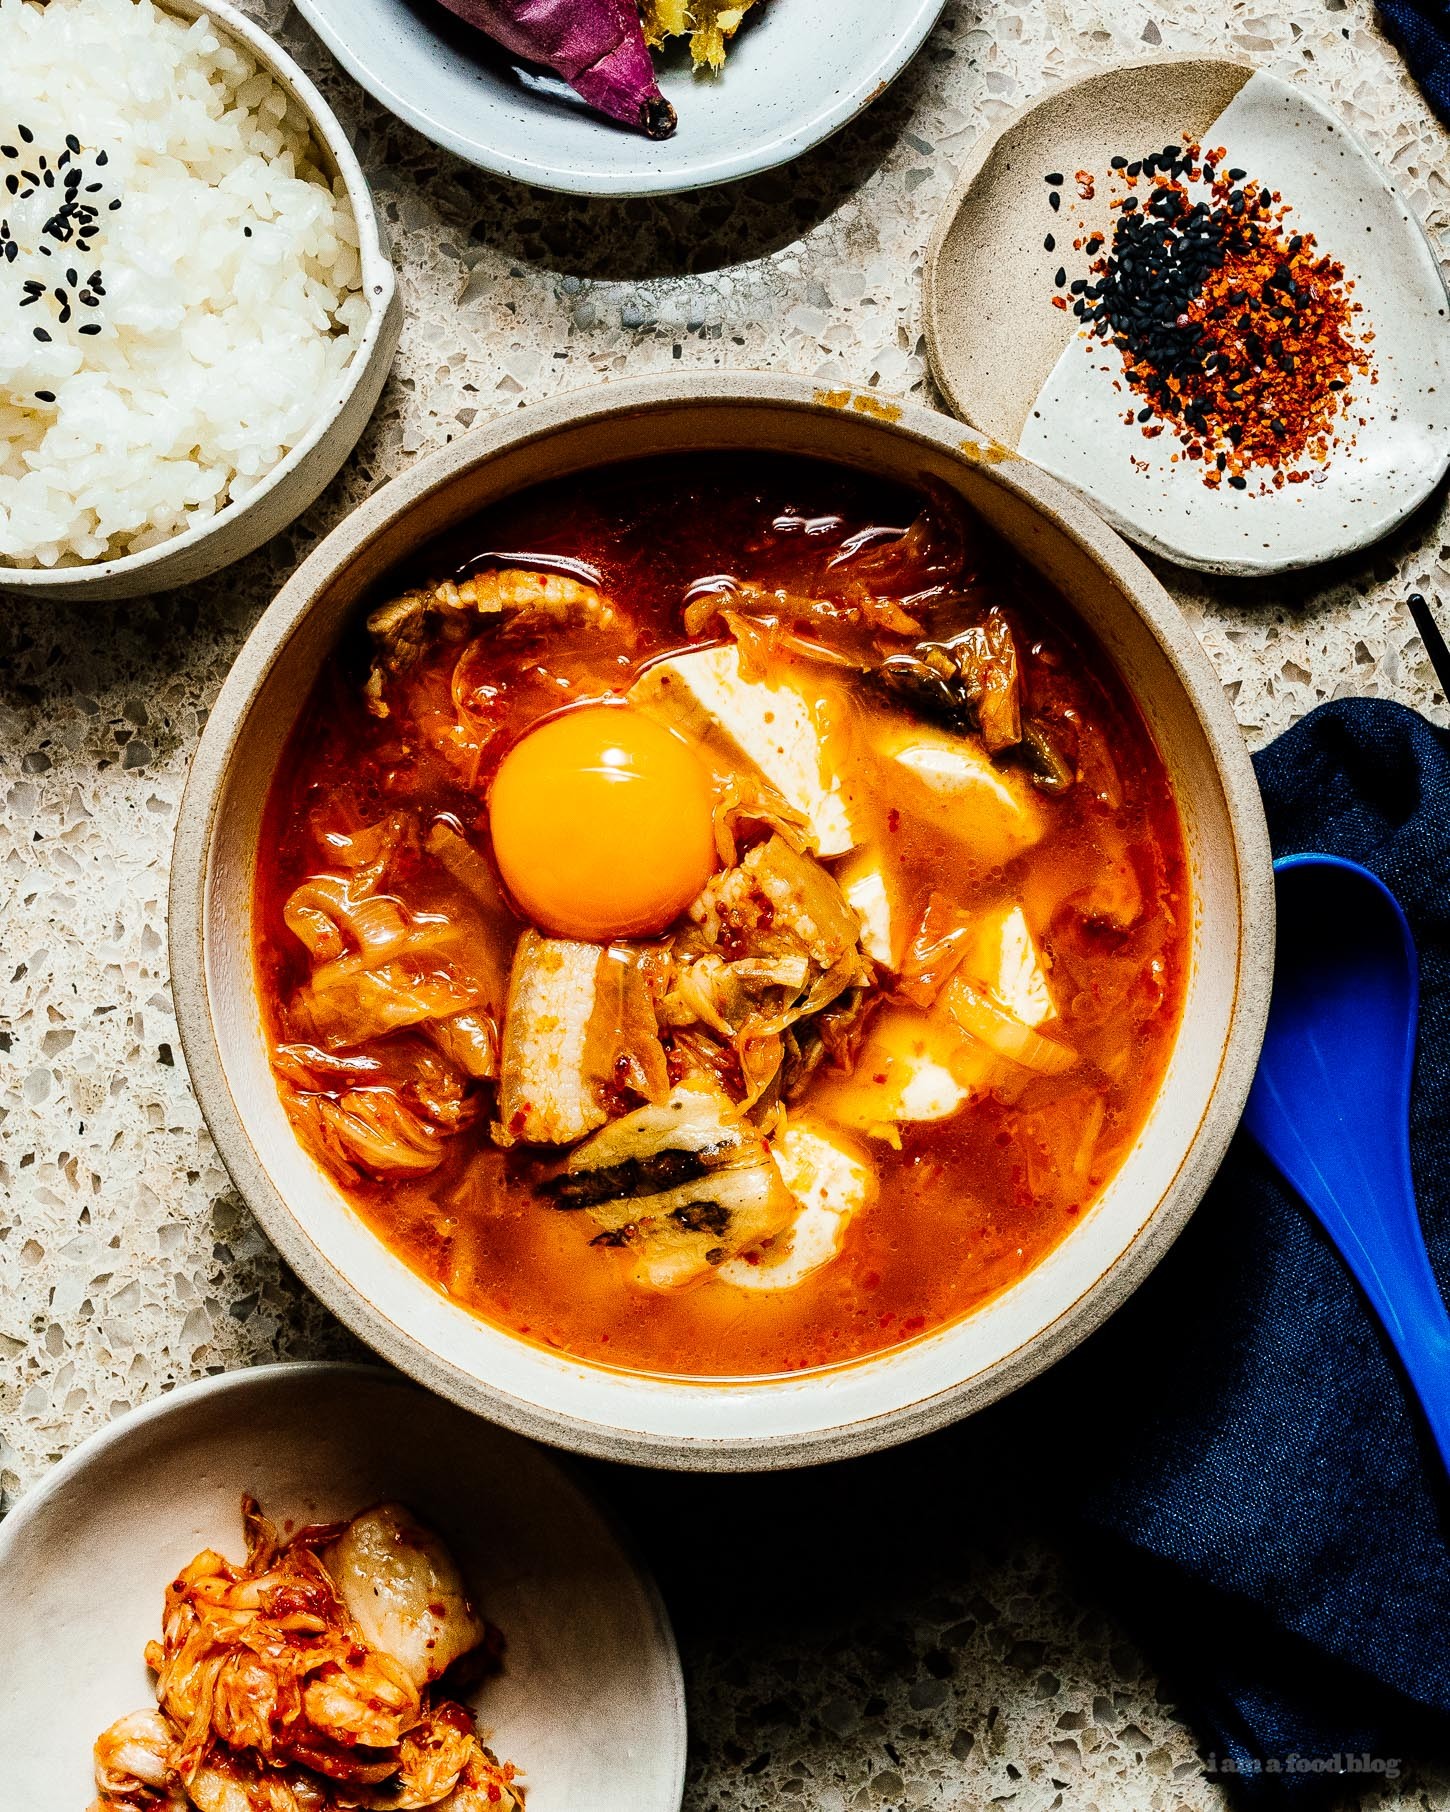 Warm and comforting sundubu jjigae/spicy kimchi soft tofu stew #kimch #tofu #korean #recipes #dinner #soup #stew #tofustew #tofusoub